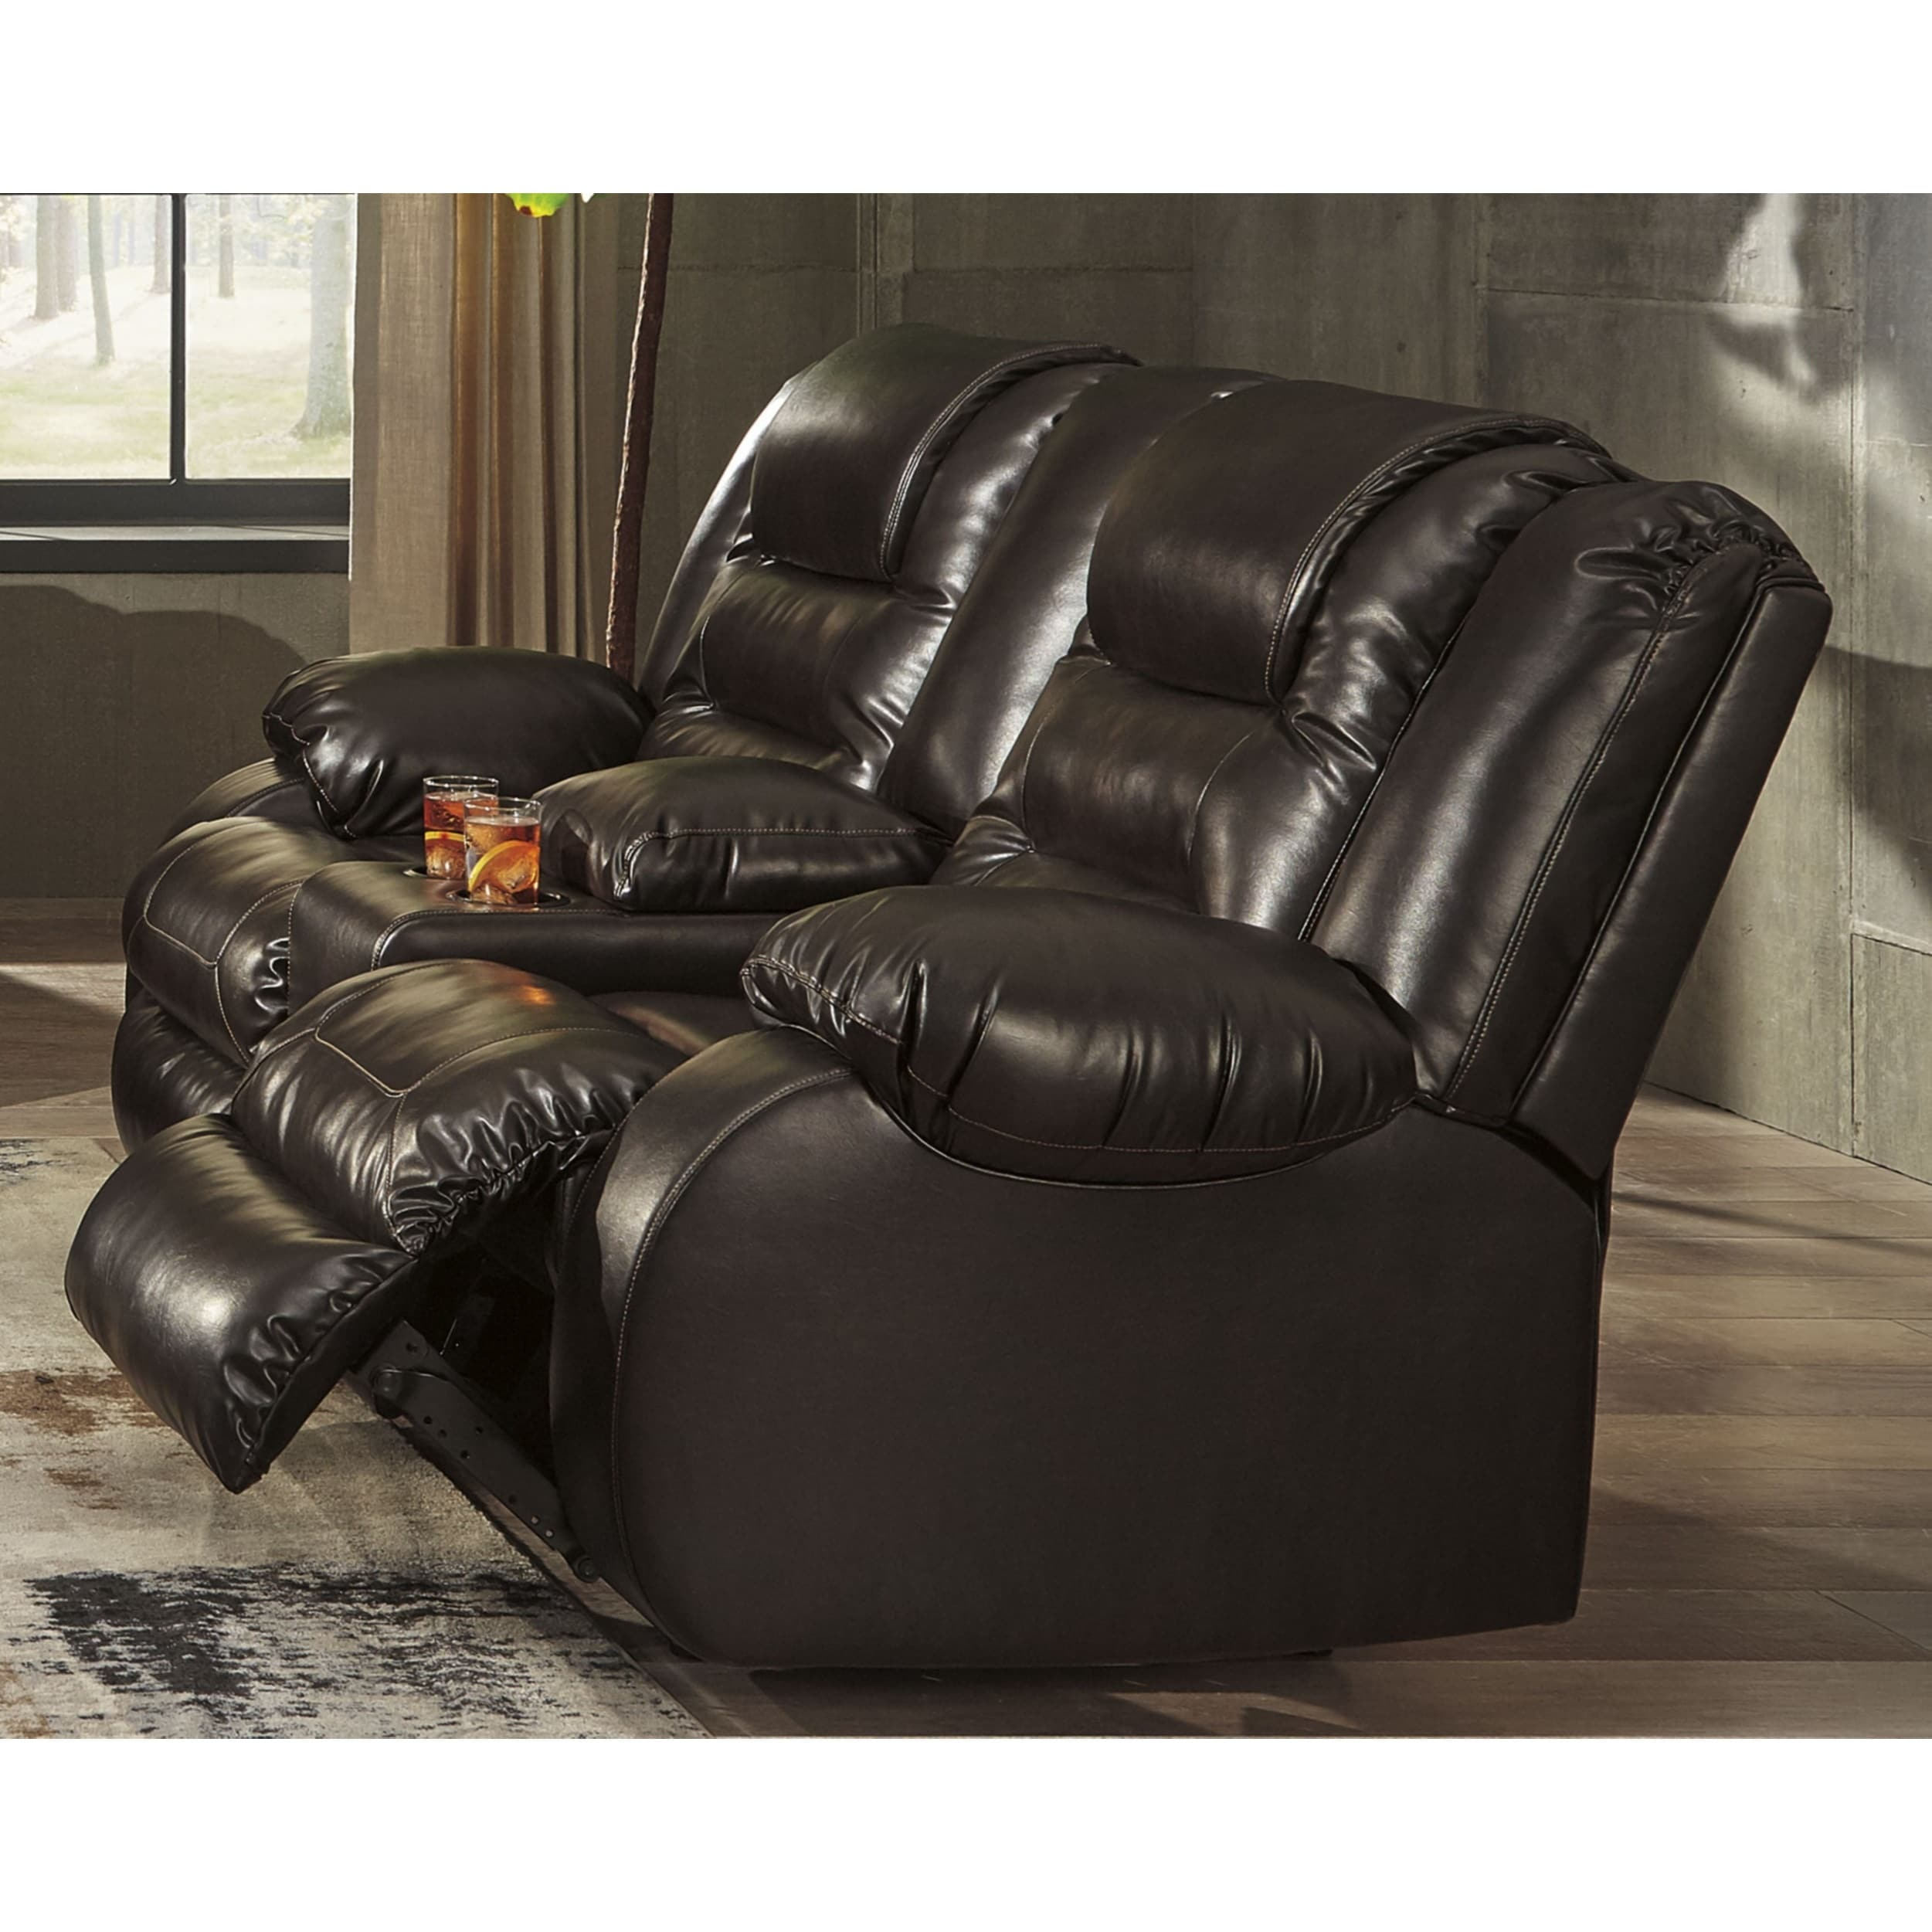 Phenomenal Signature Design By Ashley Chocolate Vacherie Reclining Loveseat W Console Onthecornerstone Fun Painted Chair Ideas Images Onthecornerstoneorg